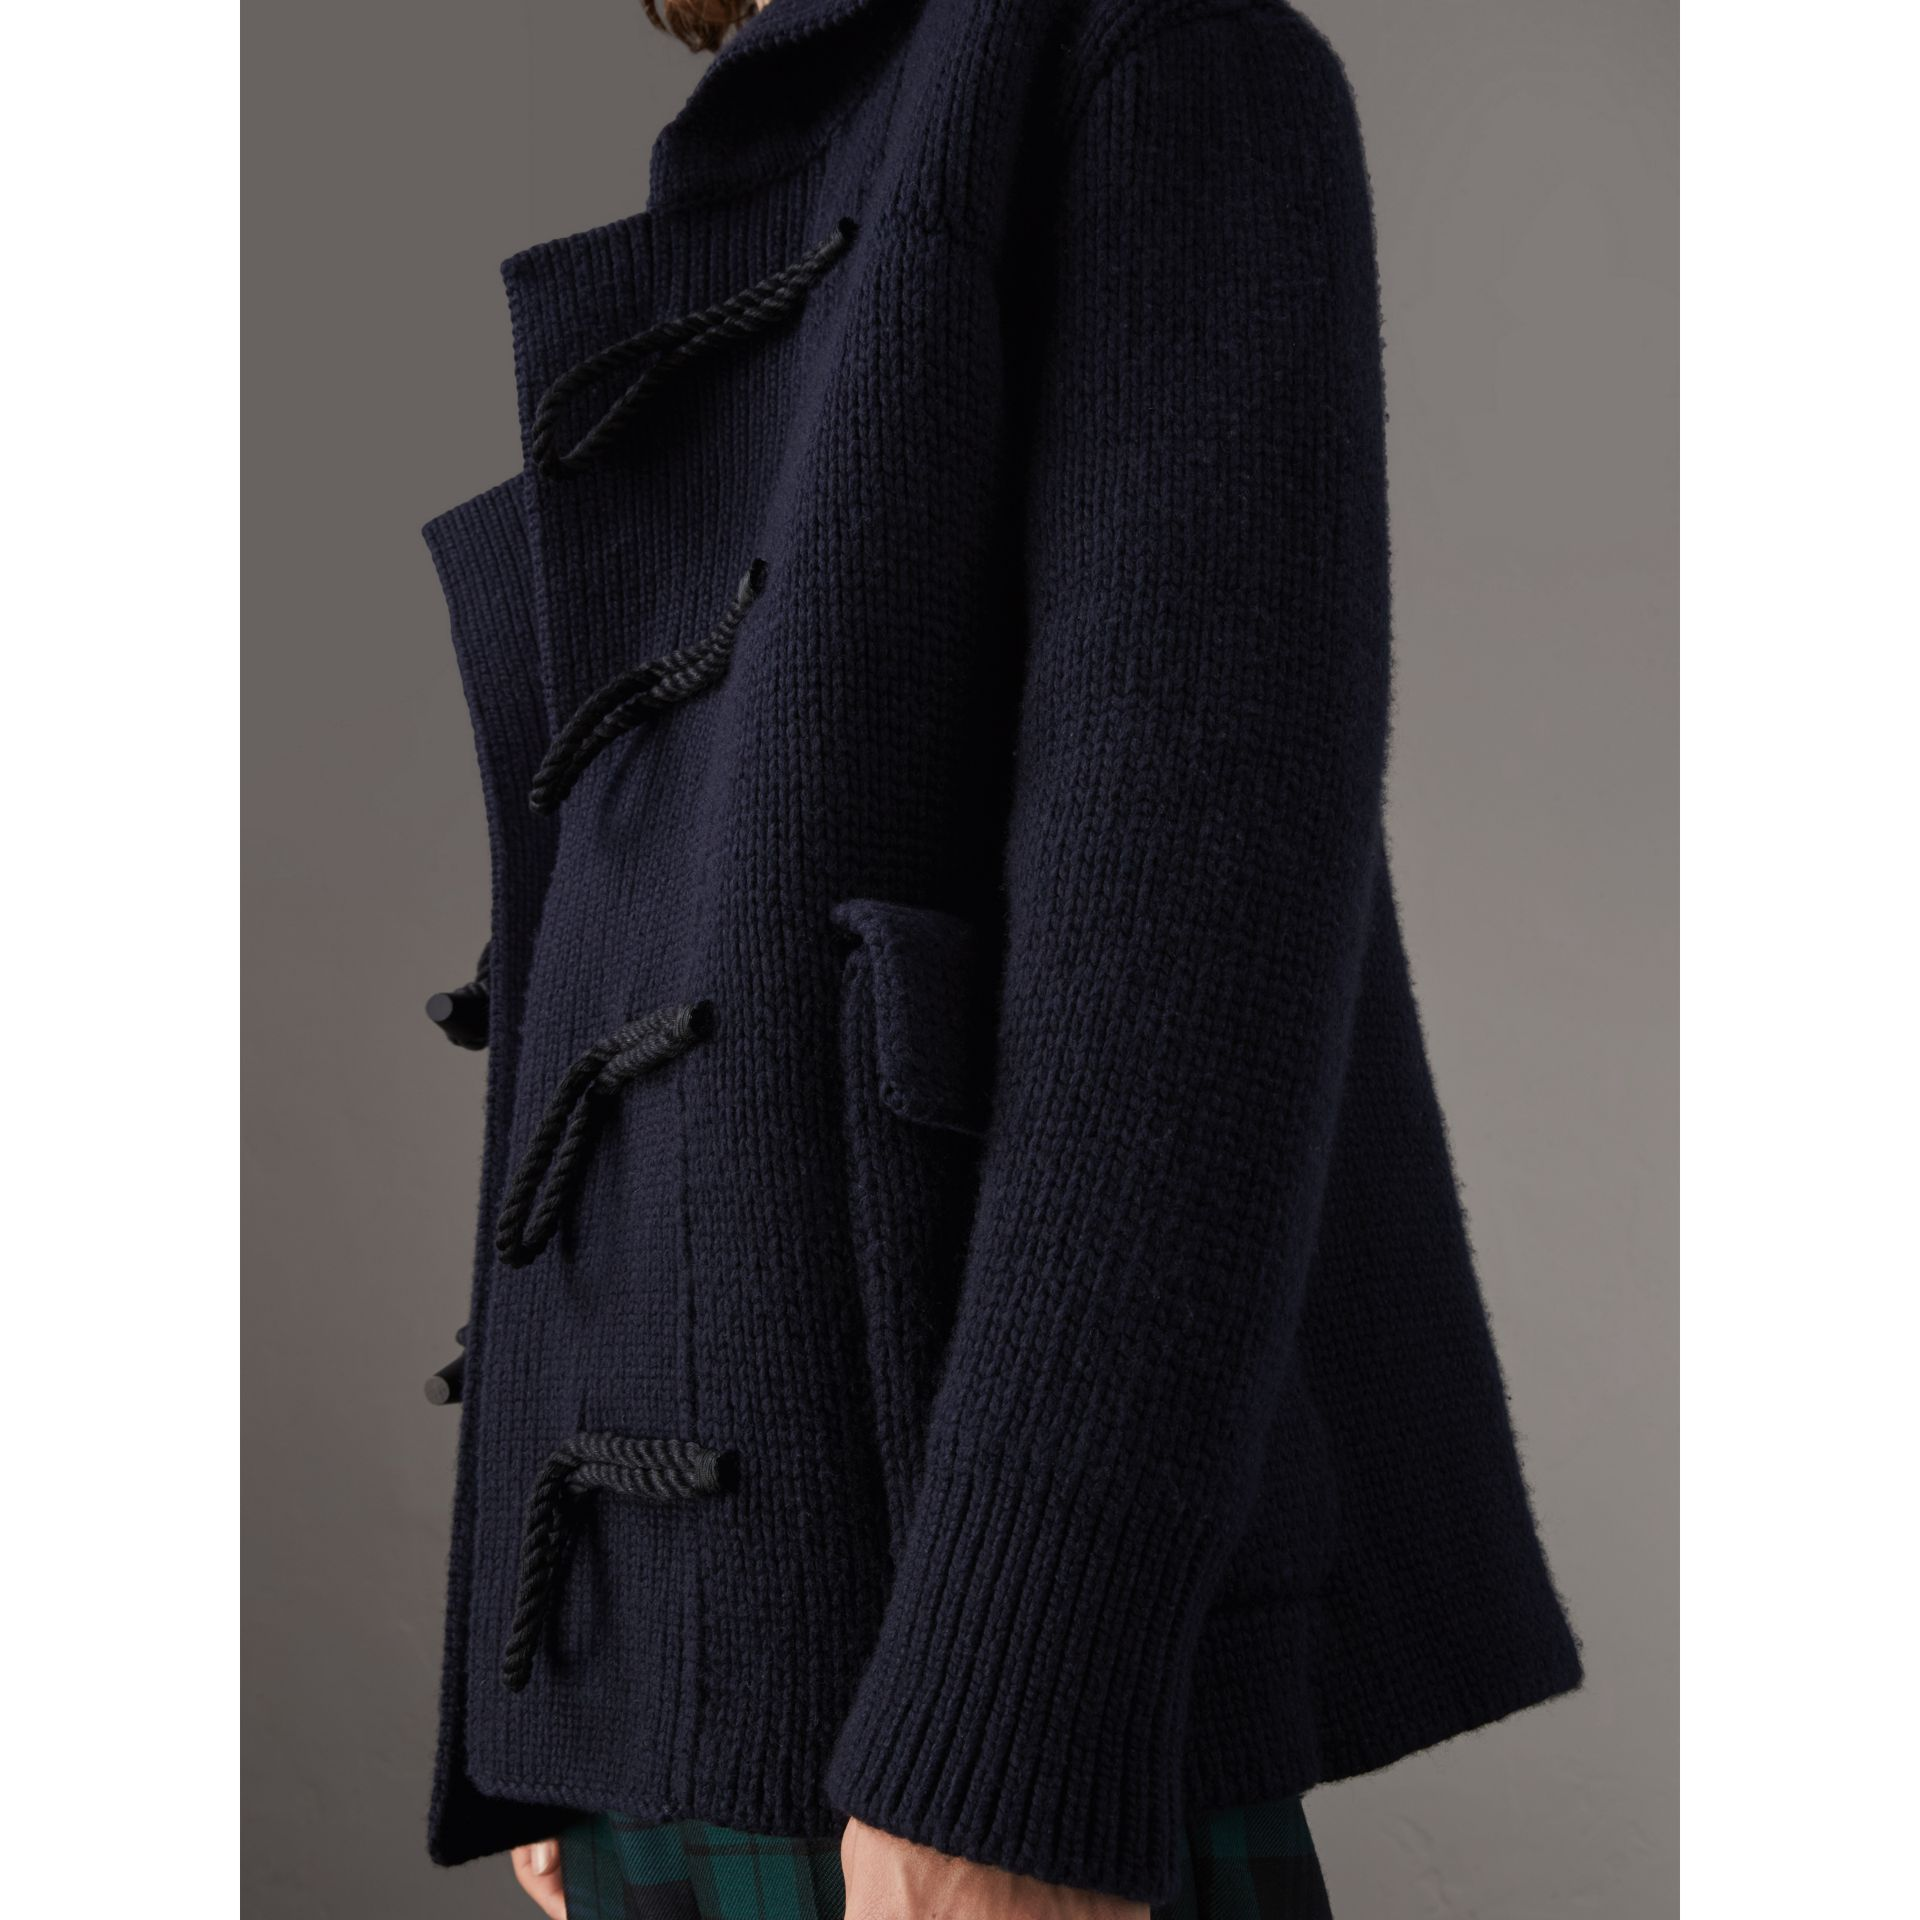 Knitted Wool Cashmere Blend Jacket in Navy - Men | Burberry - gallery image 2